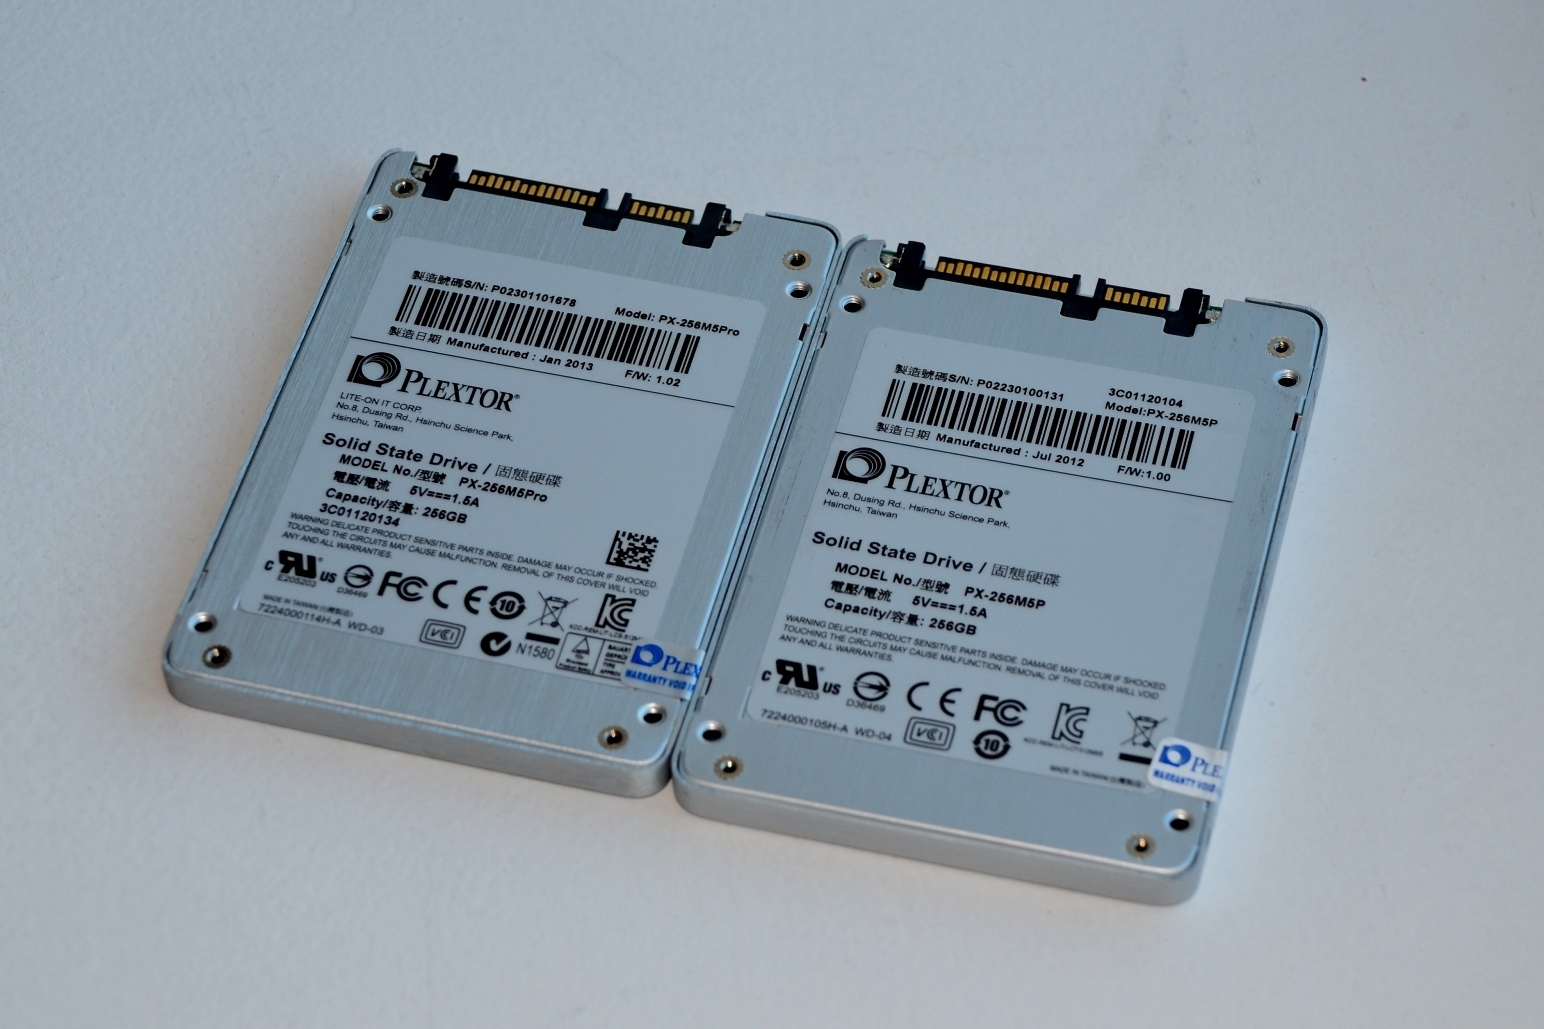 The M5 Pro Xtreme (left) is almost identical to the M5 Pro.